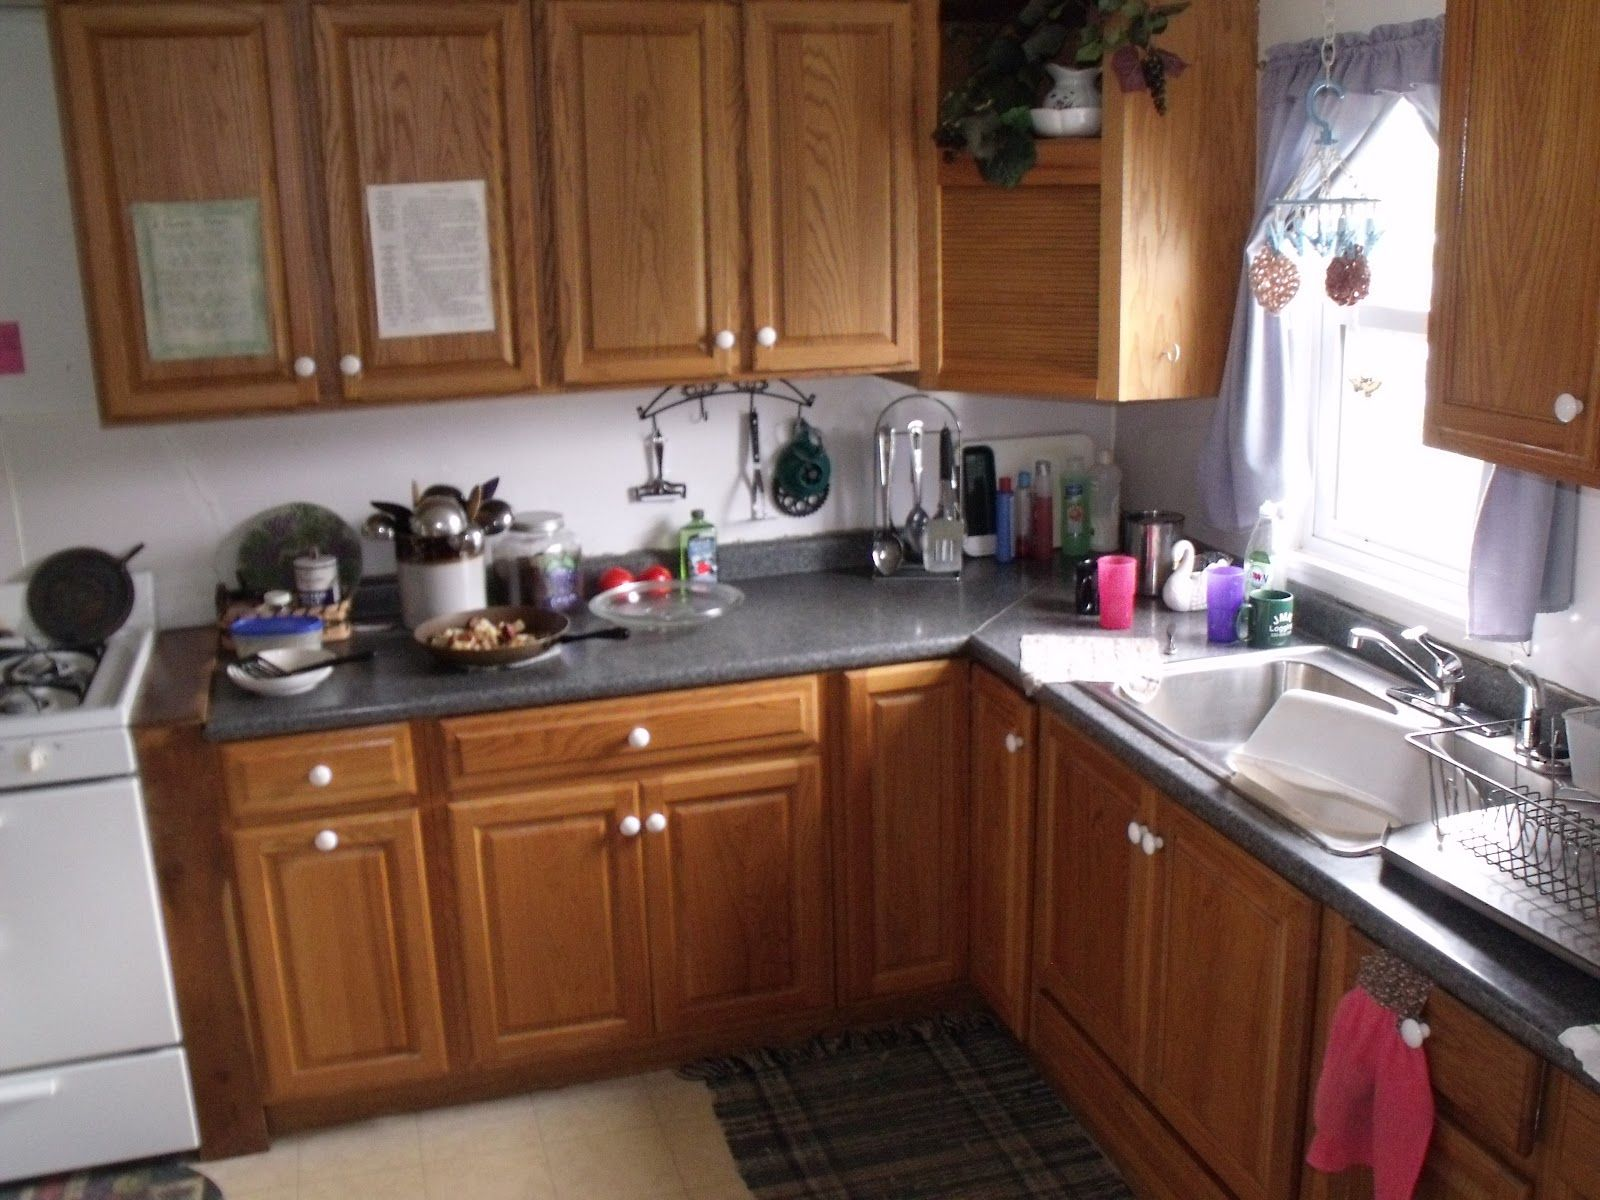 Clean And Efficent Looking Amish Kitchen Amish Home Inside Sarah S Country Kitchen Amish House Country Kitchen Home